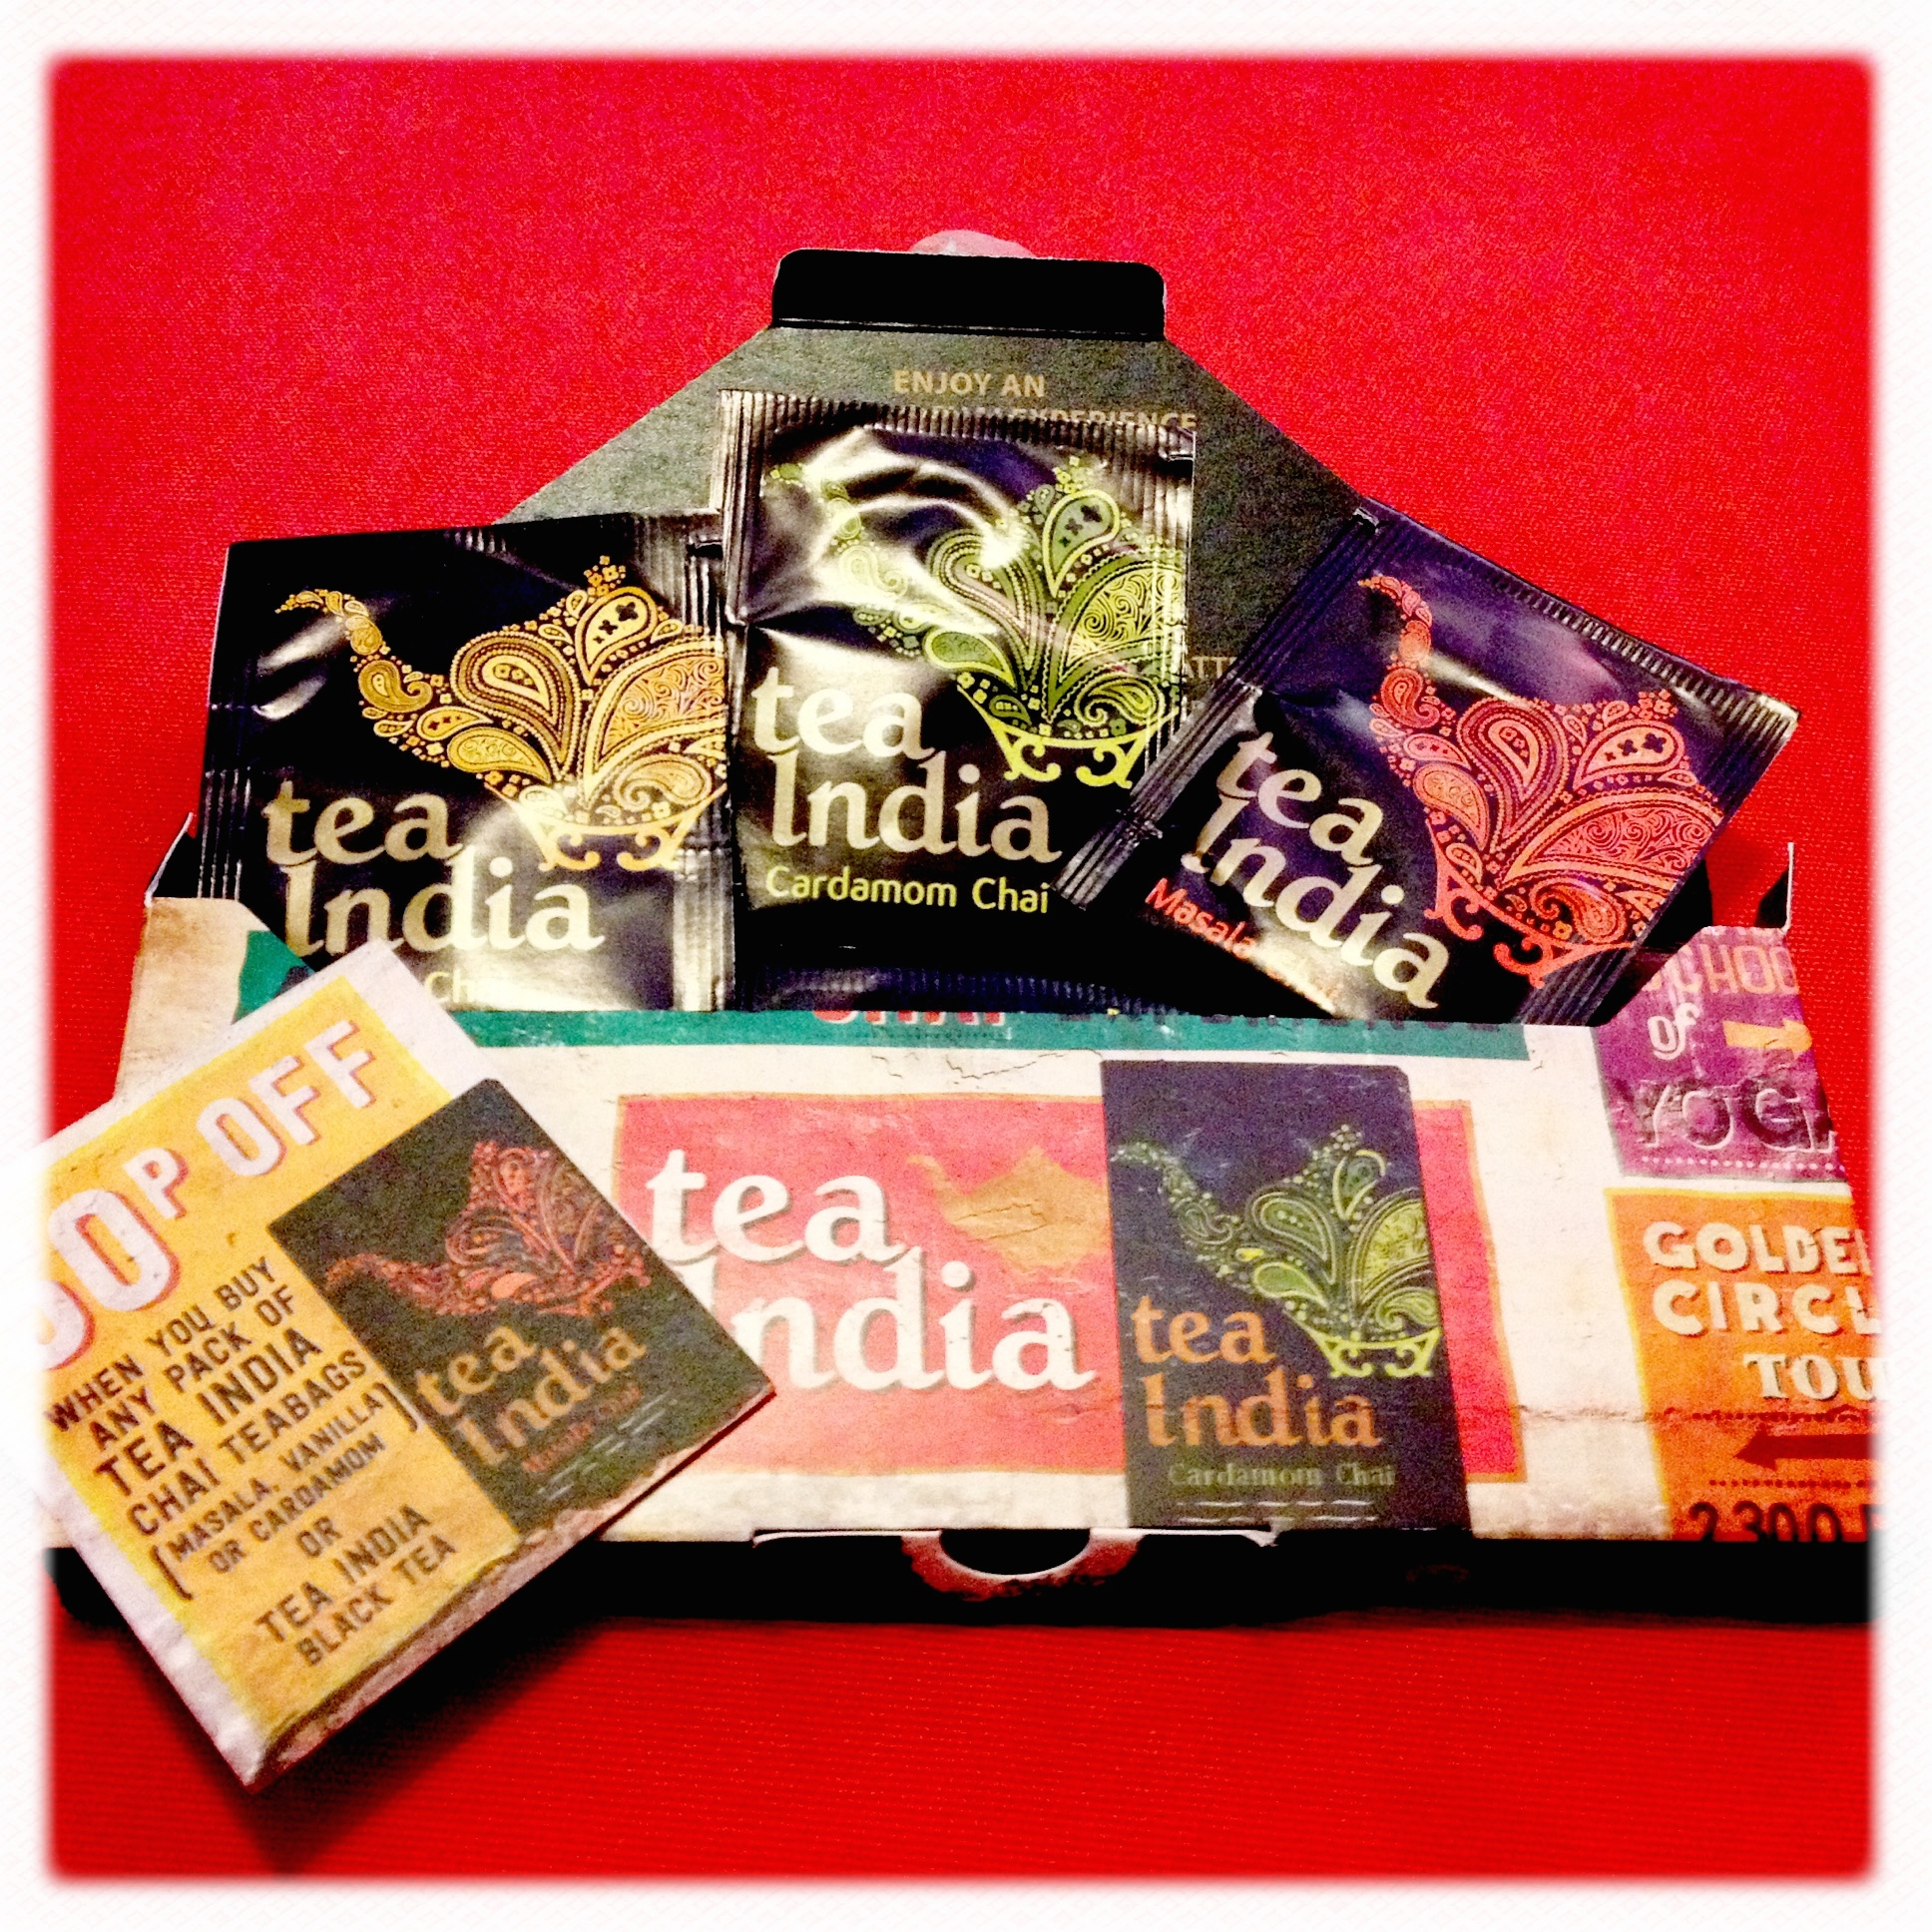 Tea India - perfect reading accessory?